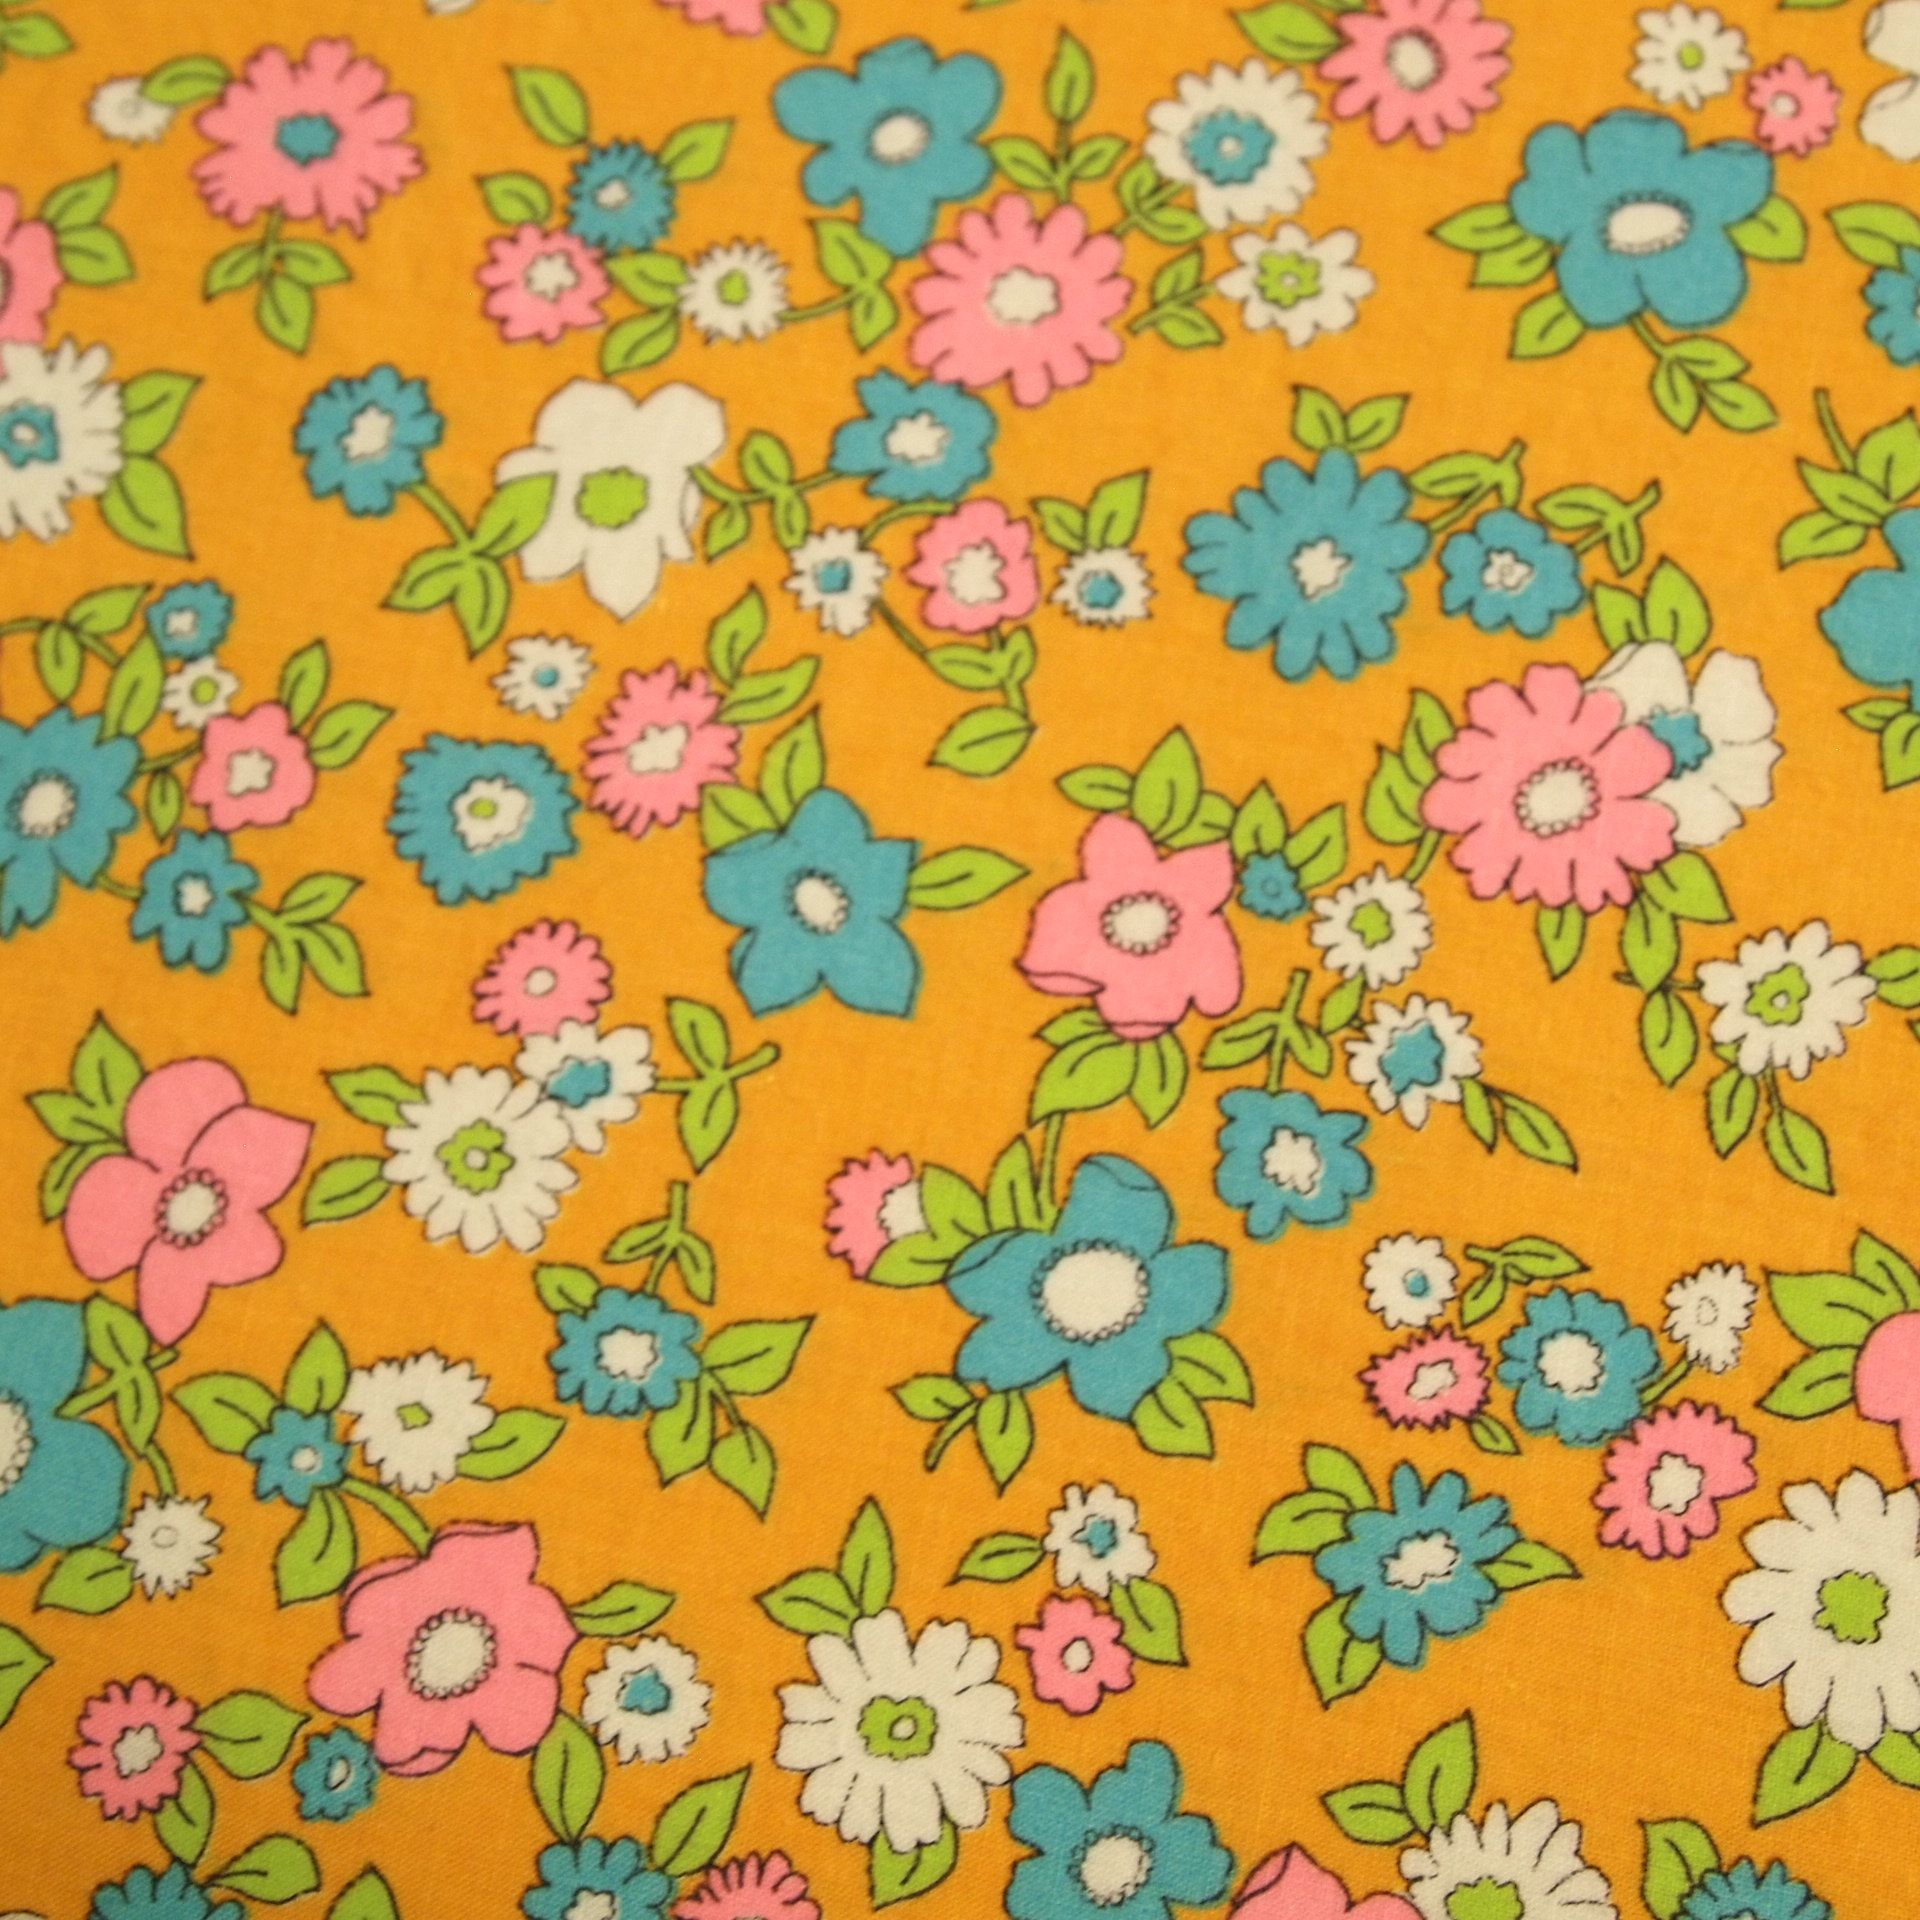 Vintage 1960s Flower Power Cotton Fabric Flower Print Pattern